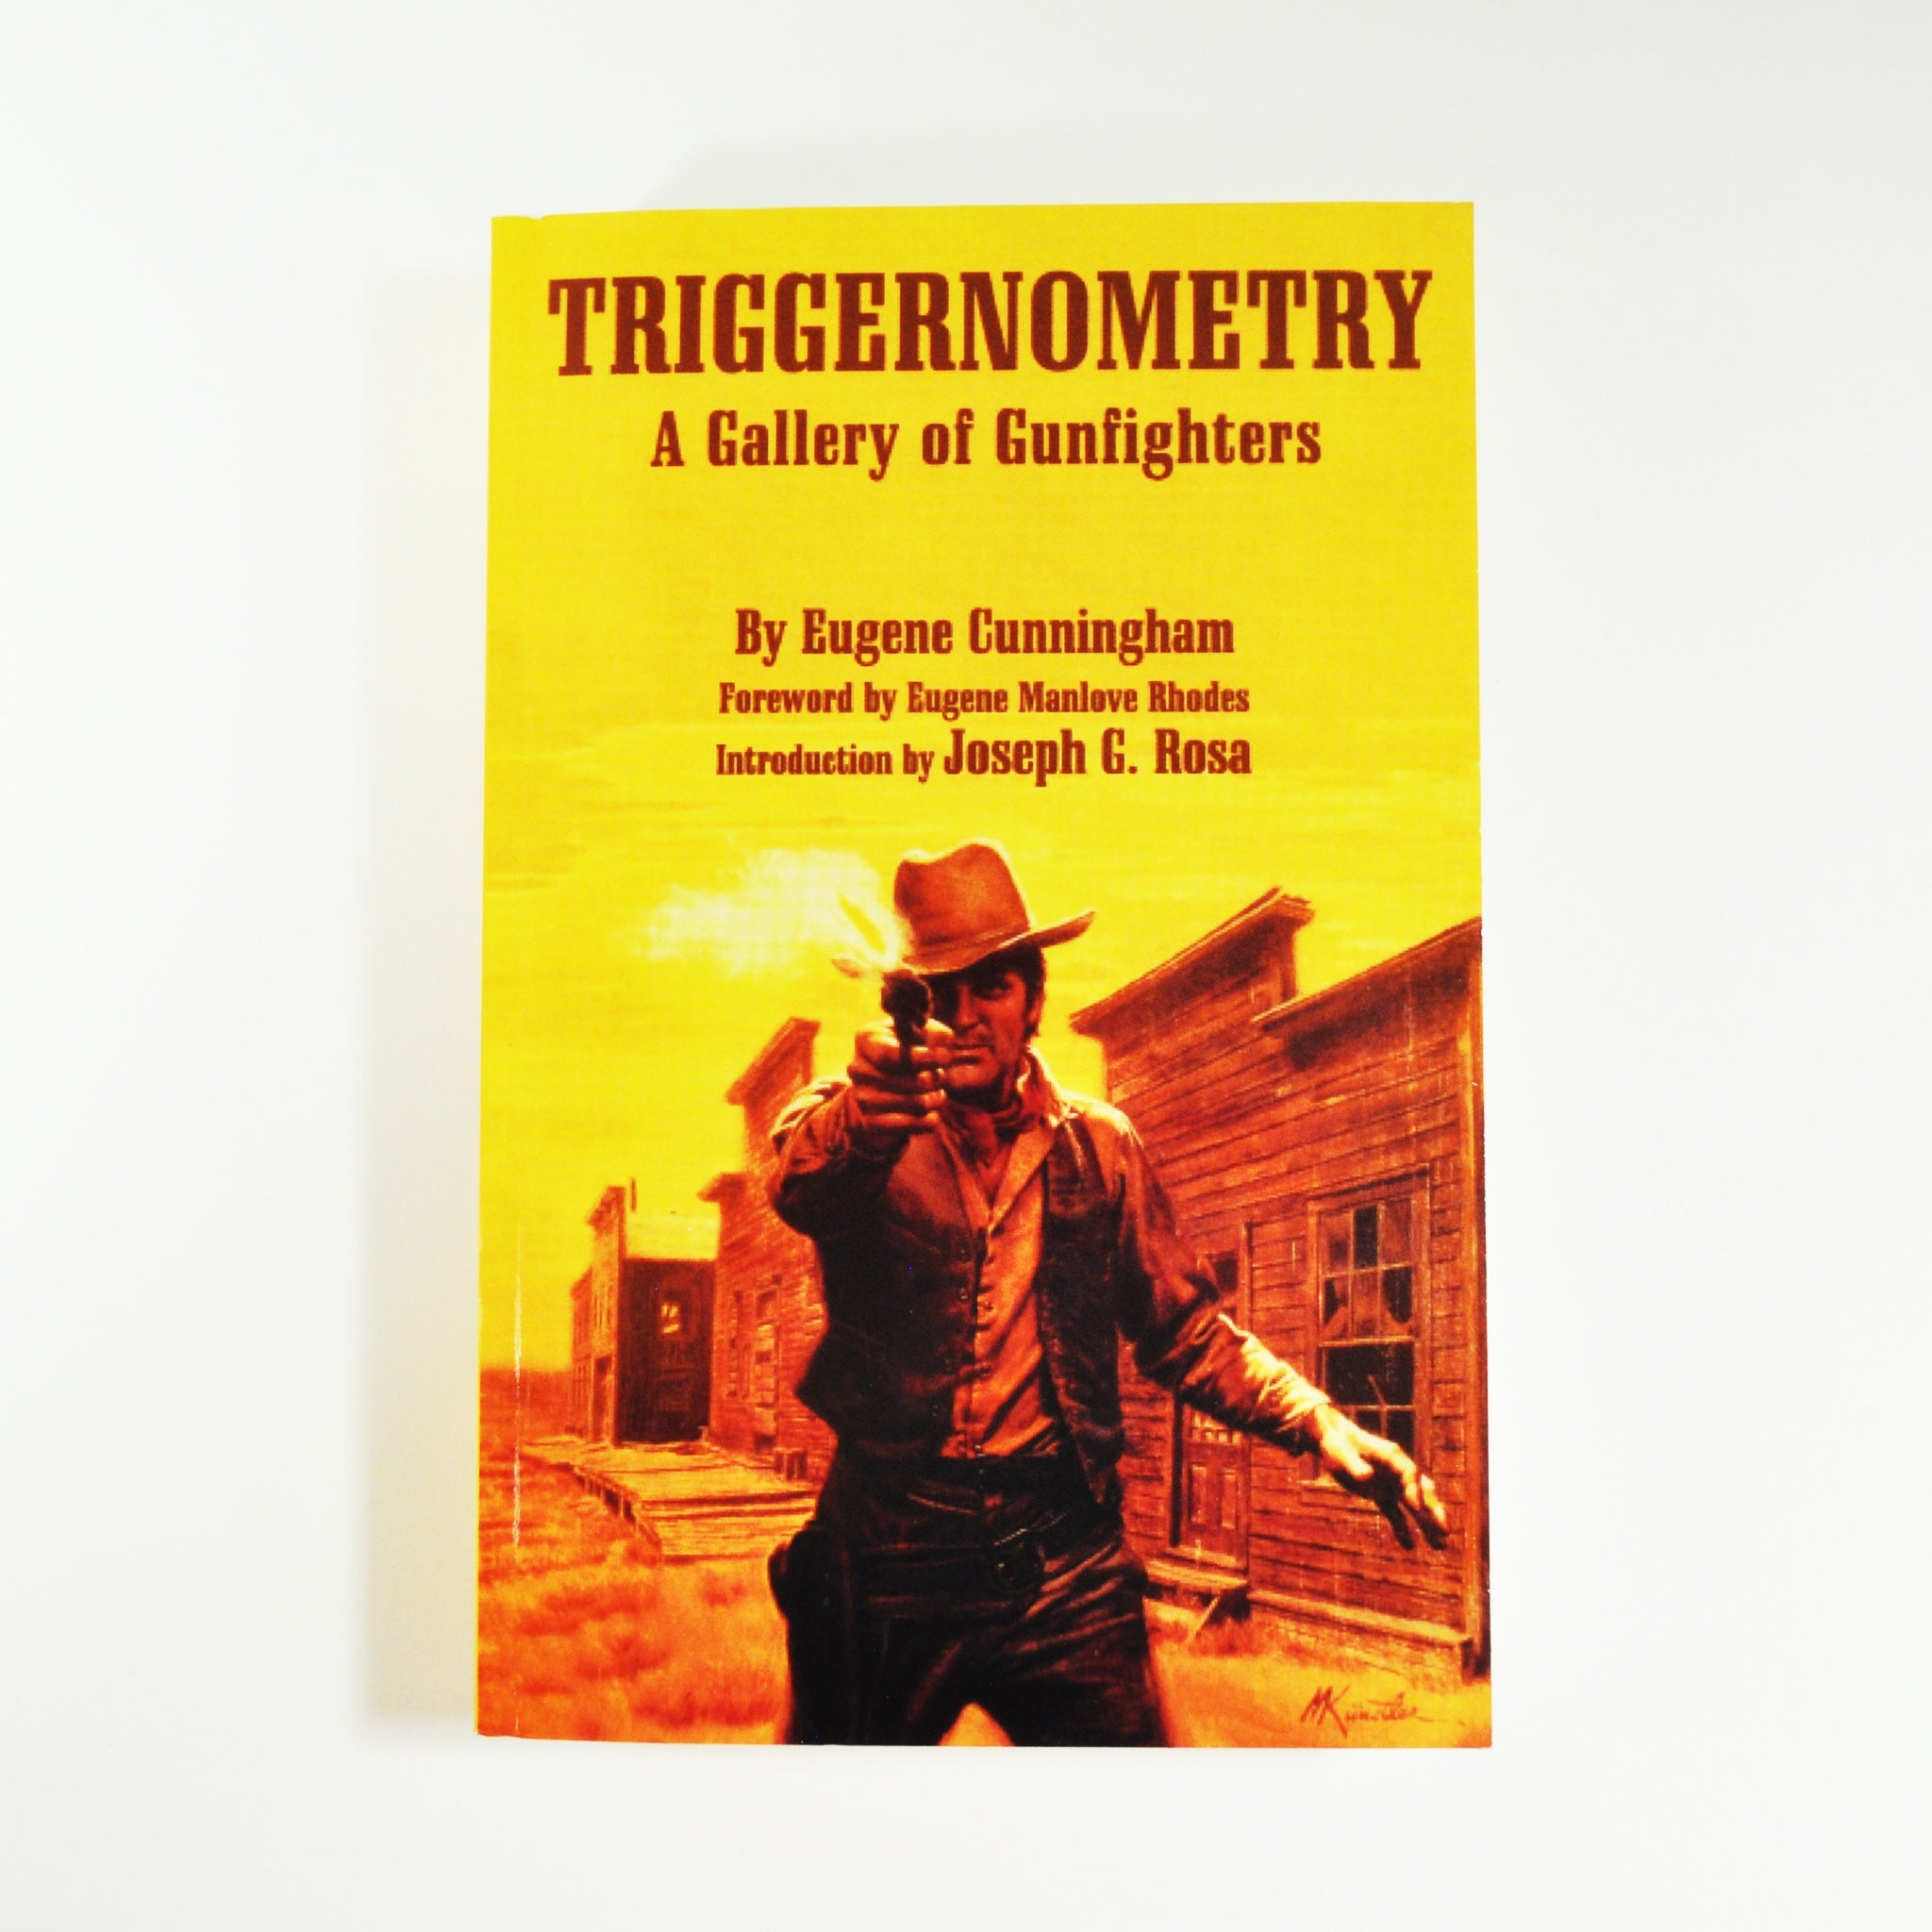 Triggernometry: A Gallery of Gunfighters by Eugene Cunningham - 21035109